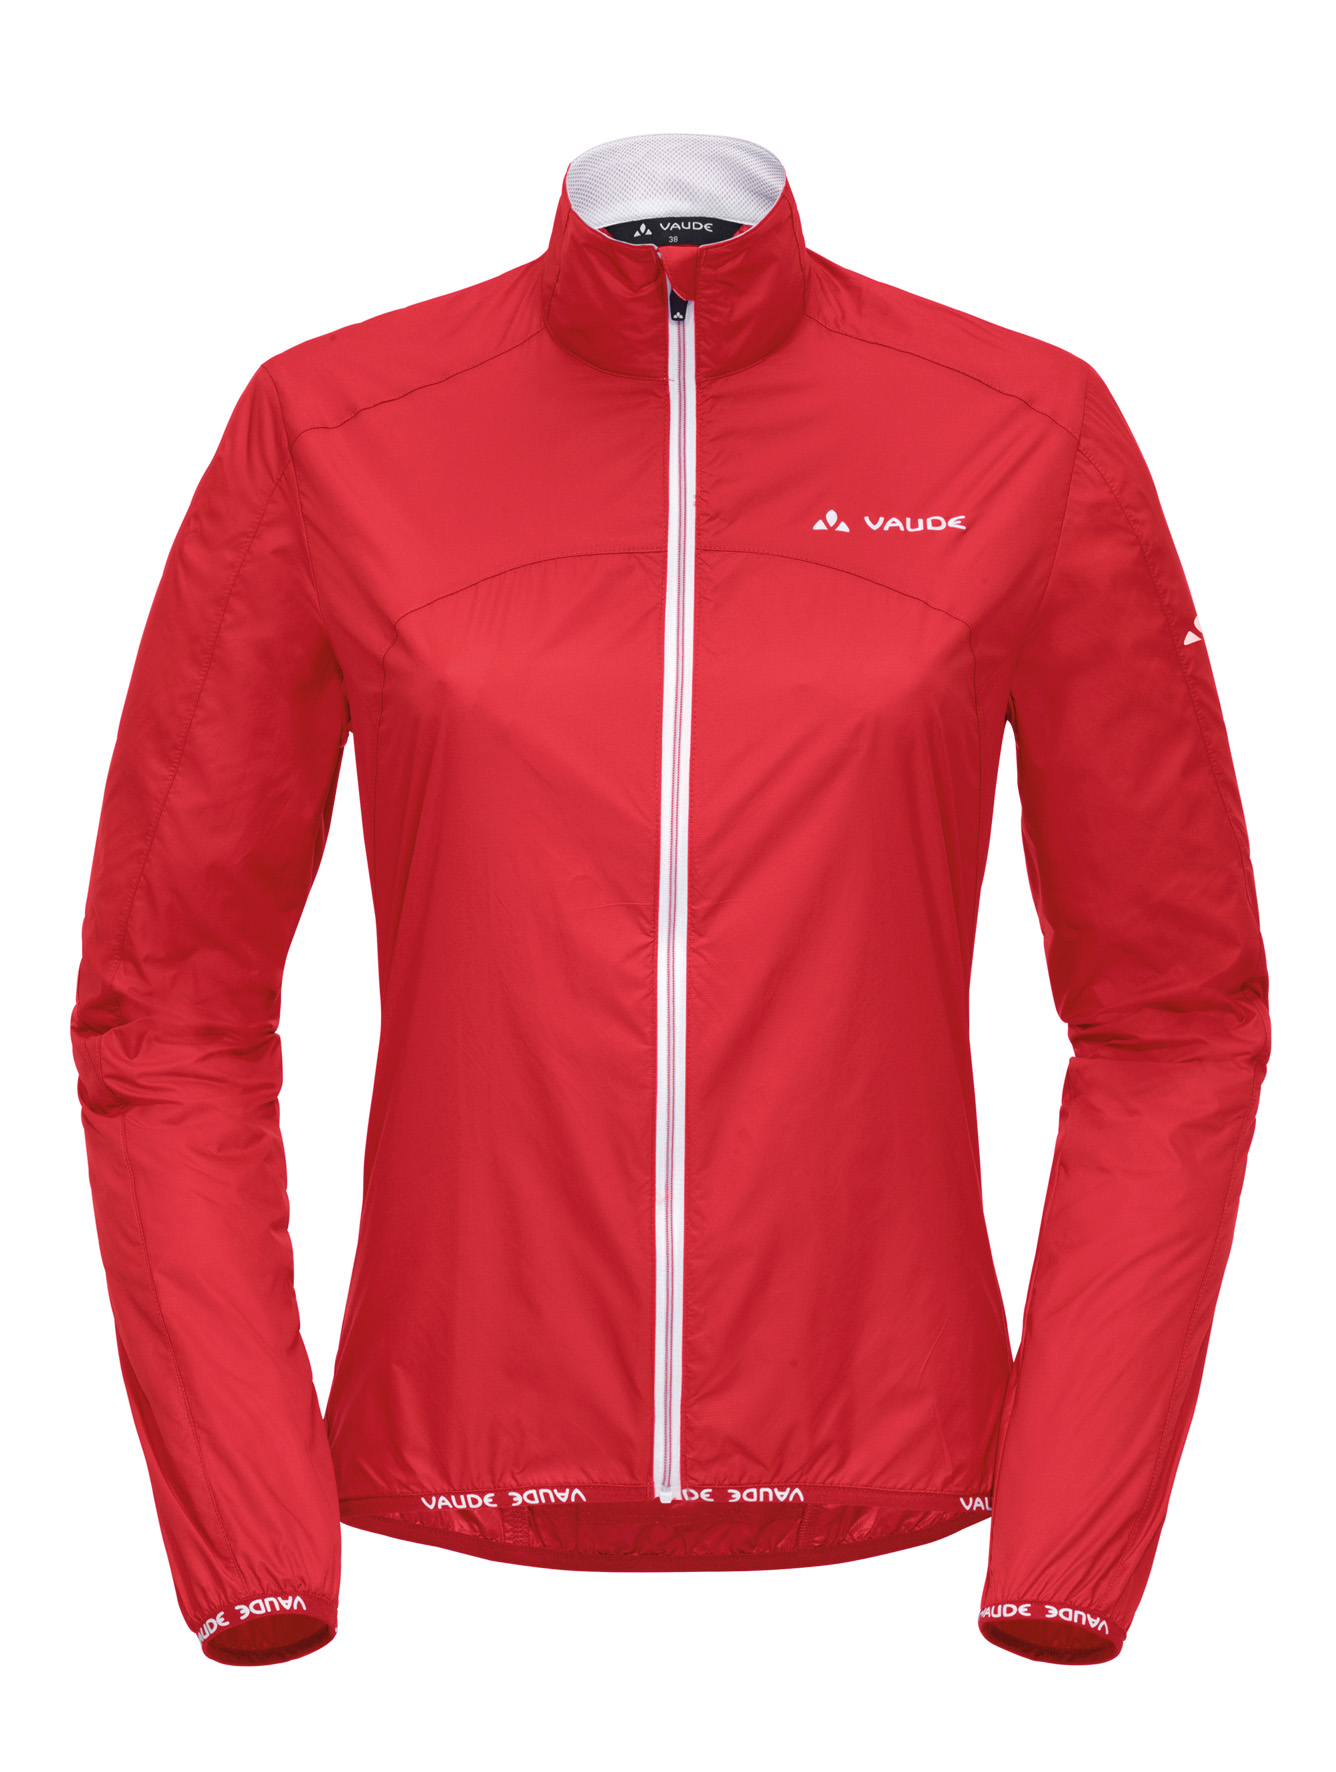 VAUDE Women´s Air Jacket II red Größe 34 - schneider-sports